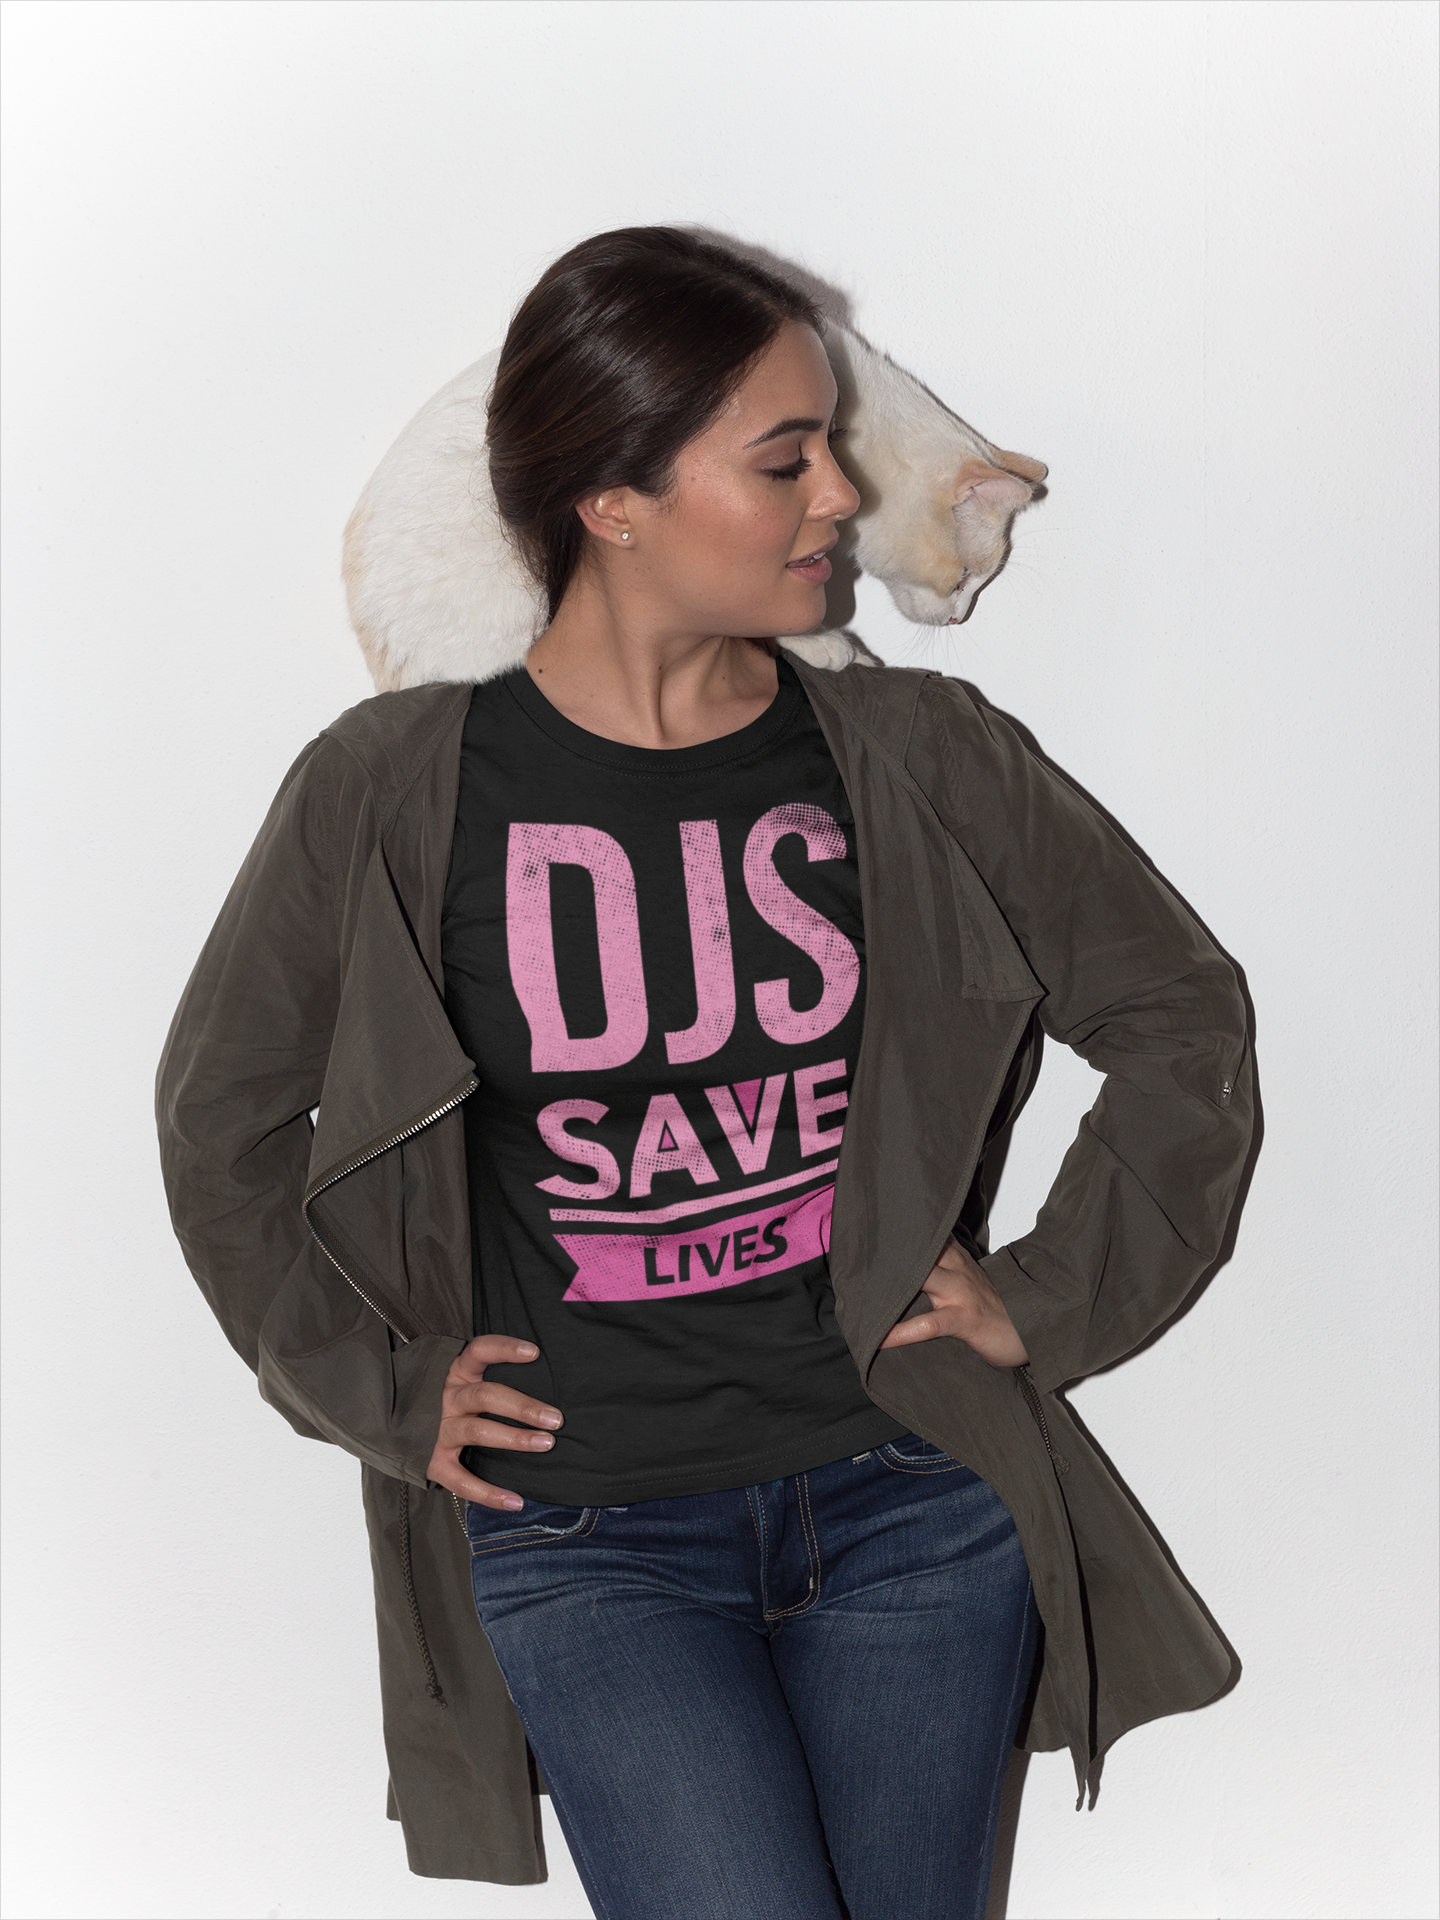 DJS SAVE LIVES PINK Women's T-Shirt LIMITED EDITION